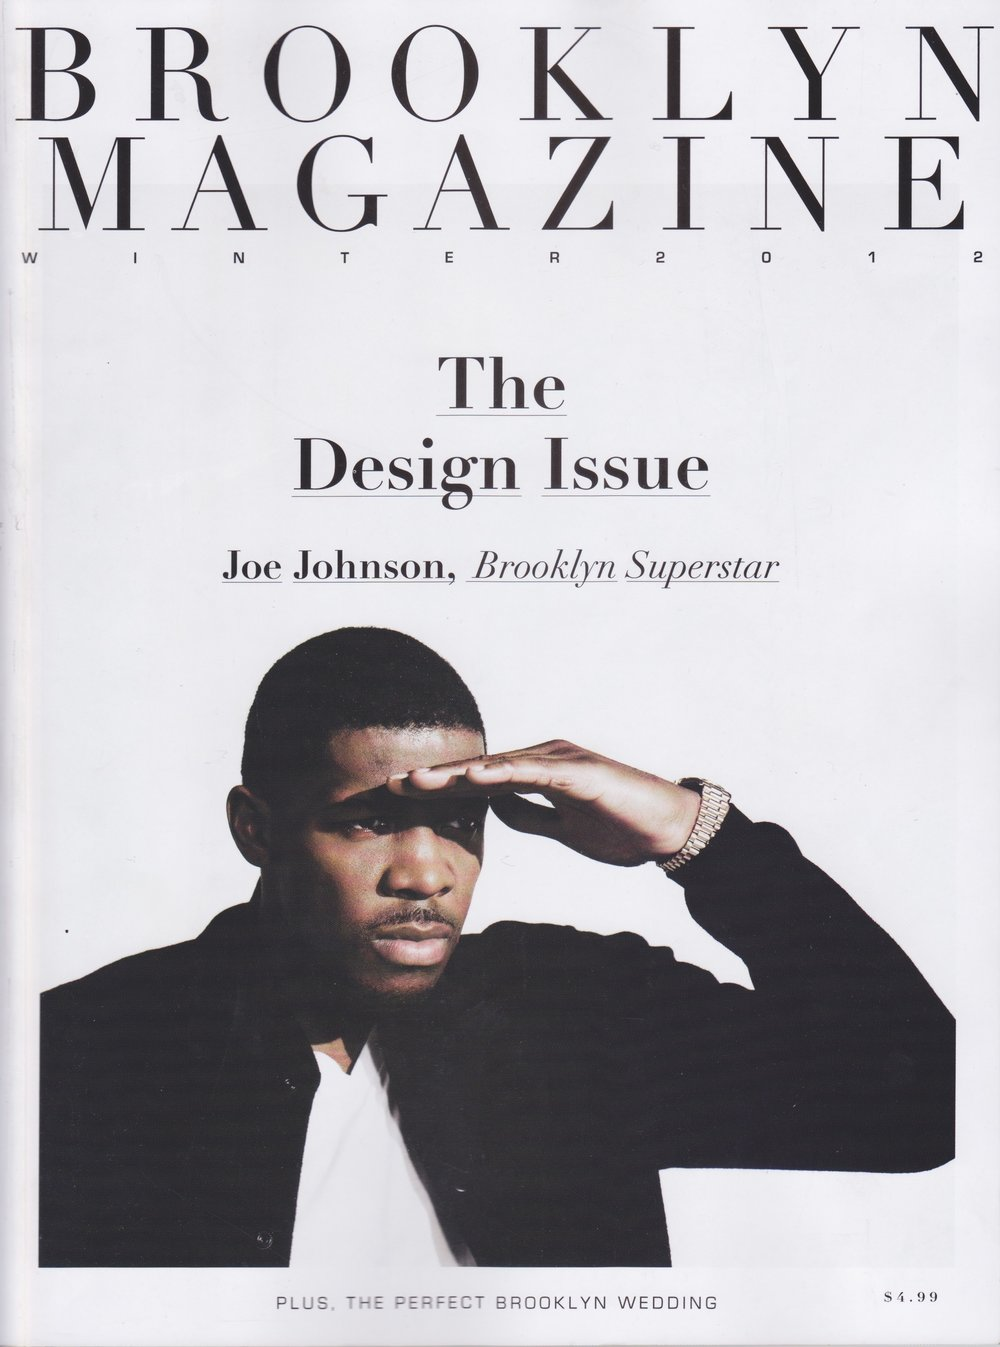 Brooklyn Magazine Cover.jpg